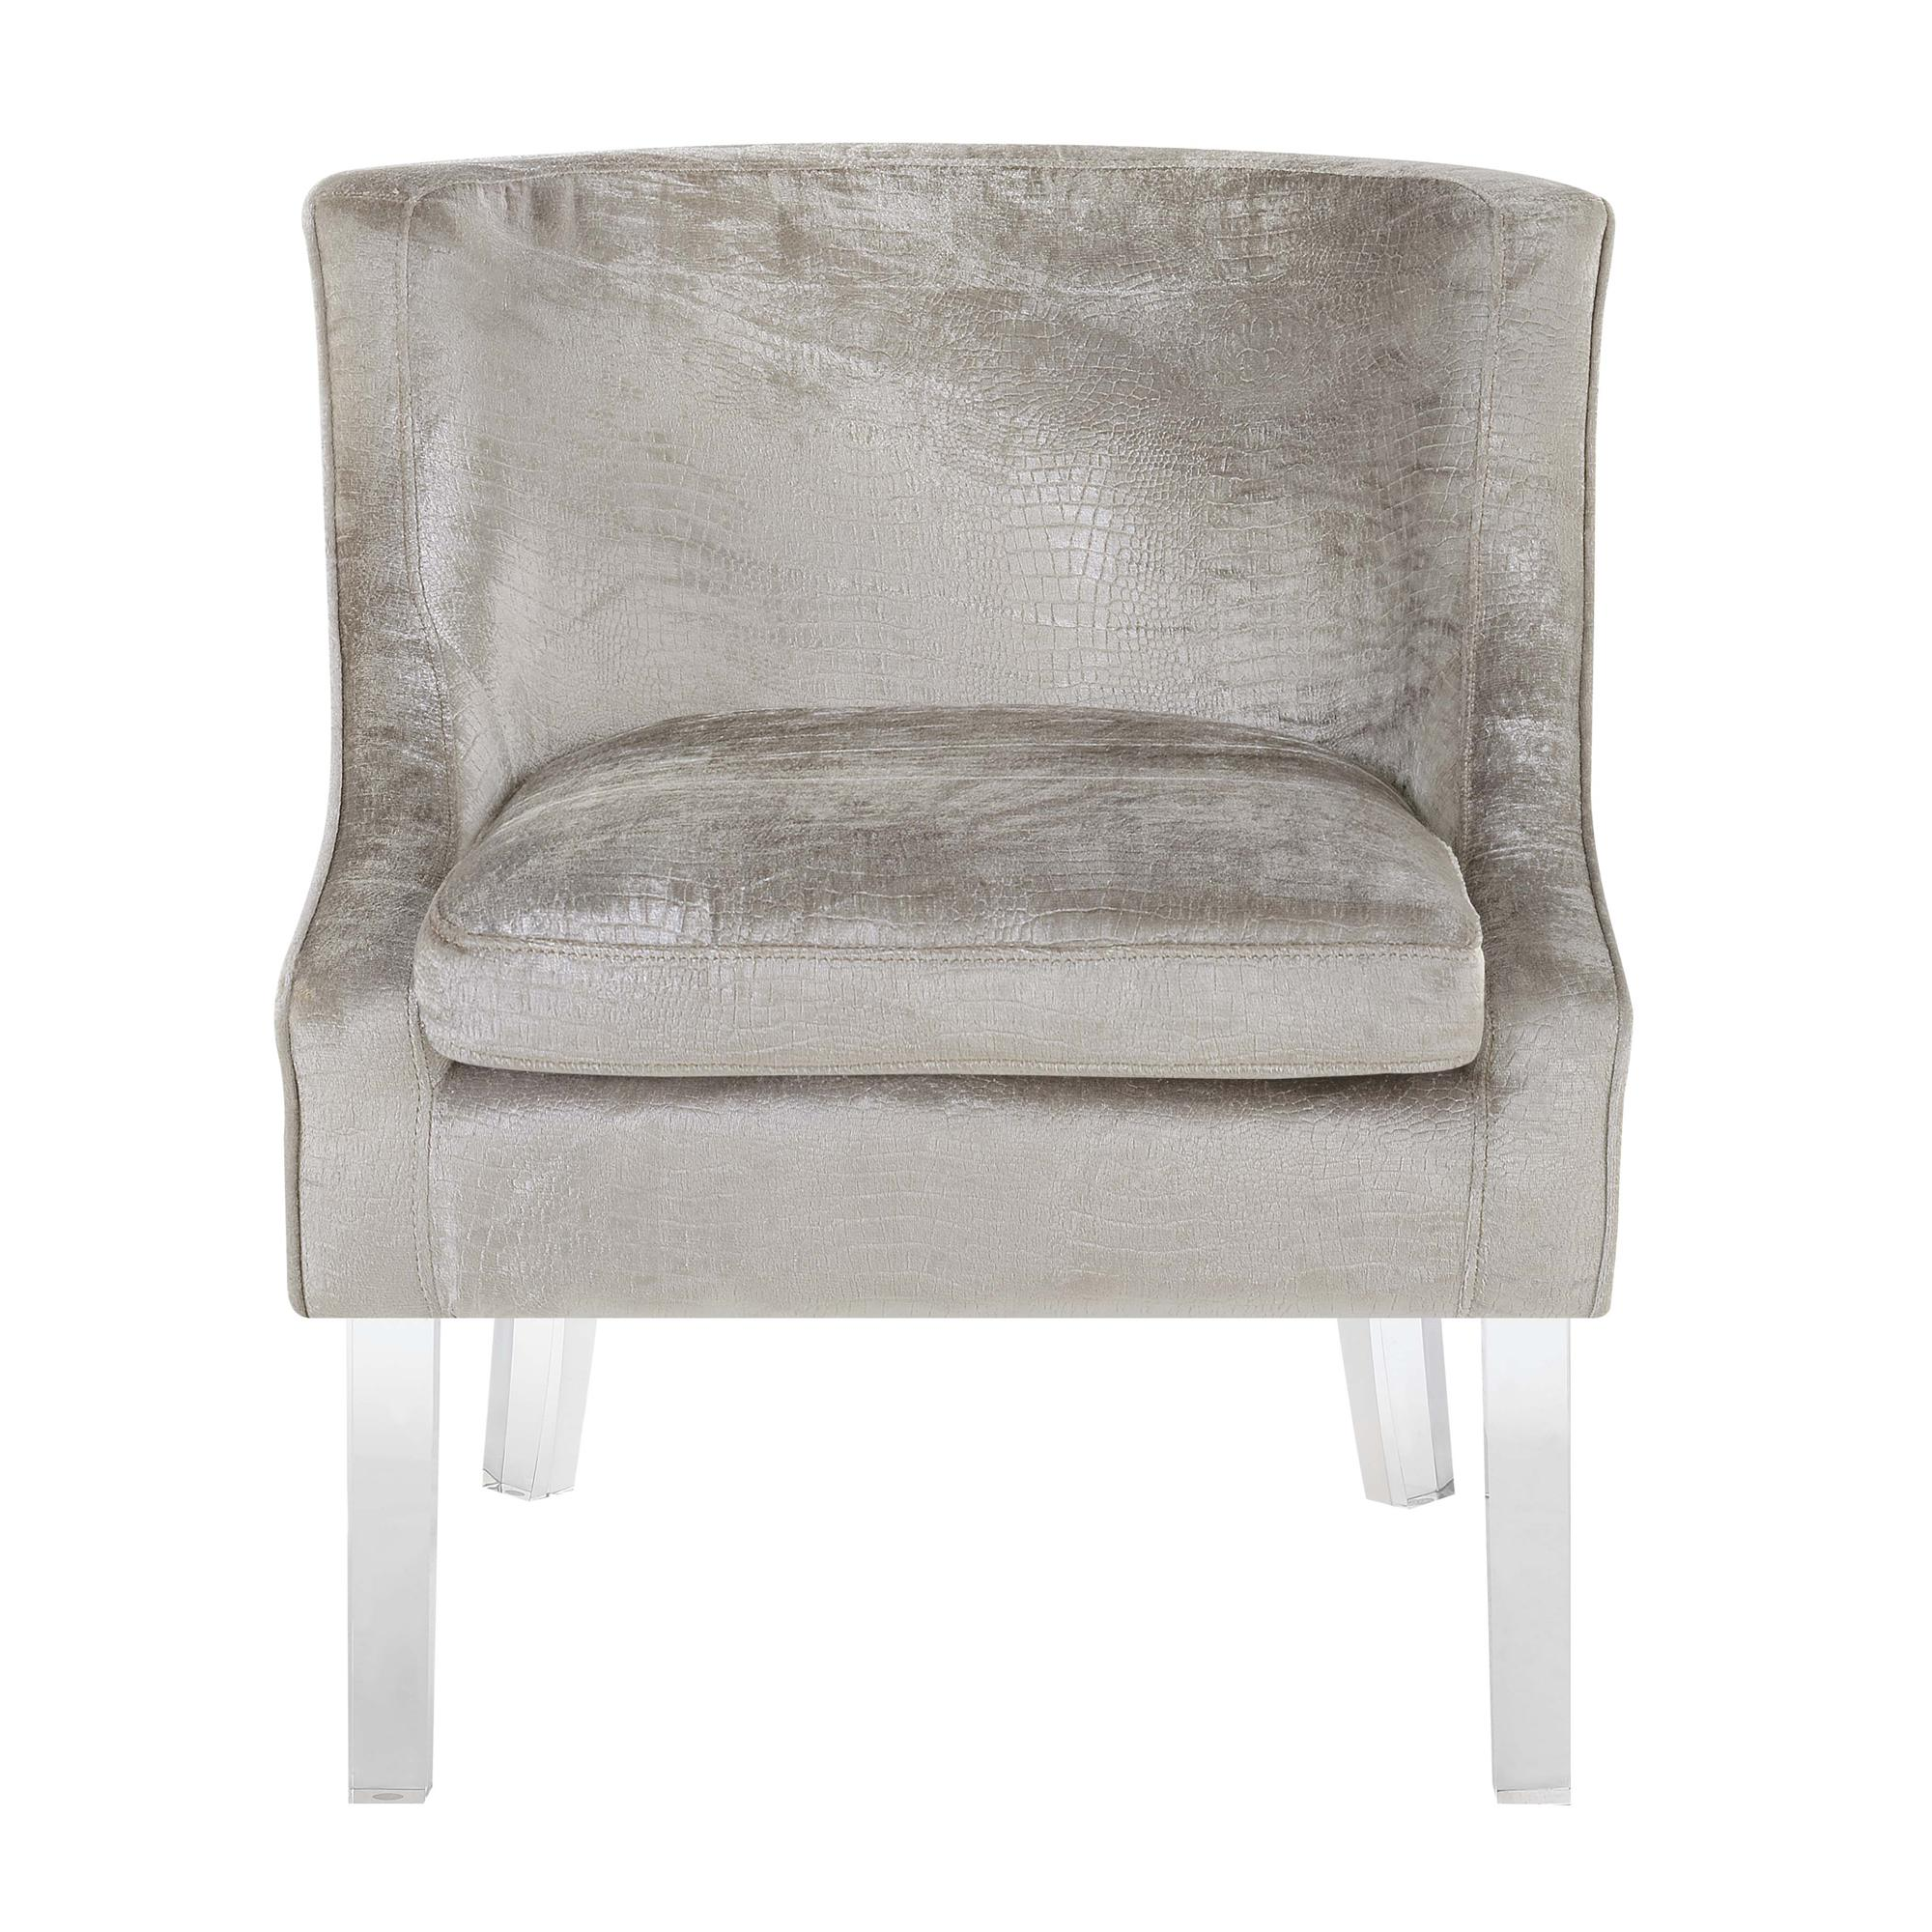 Picket House Tristan Beige Fabric Accent Chair The Classy Home